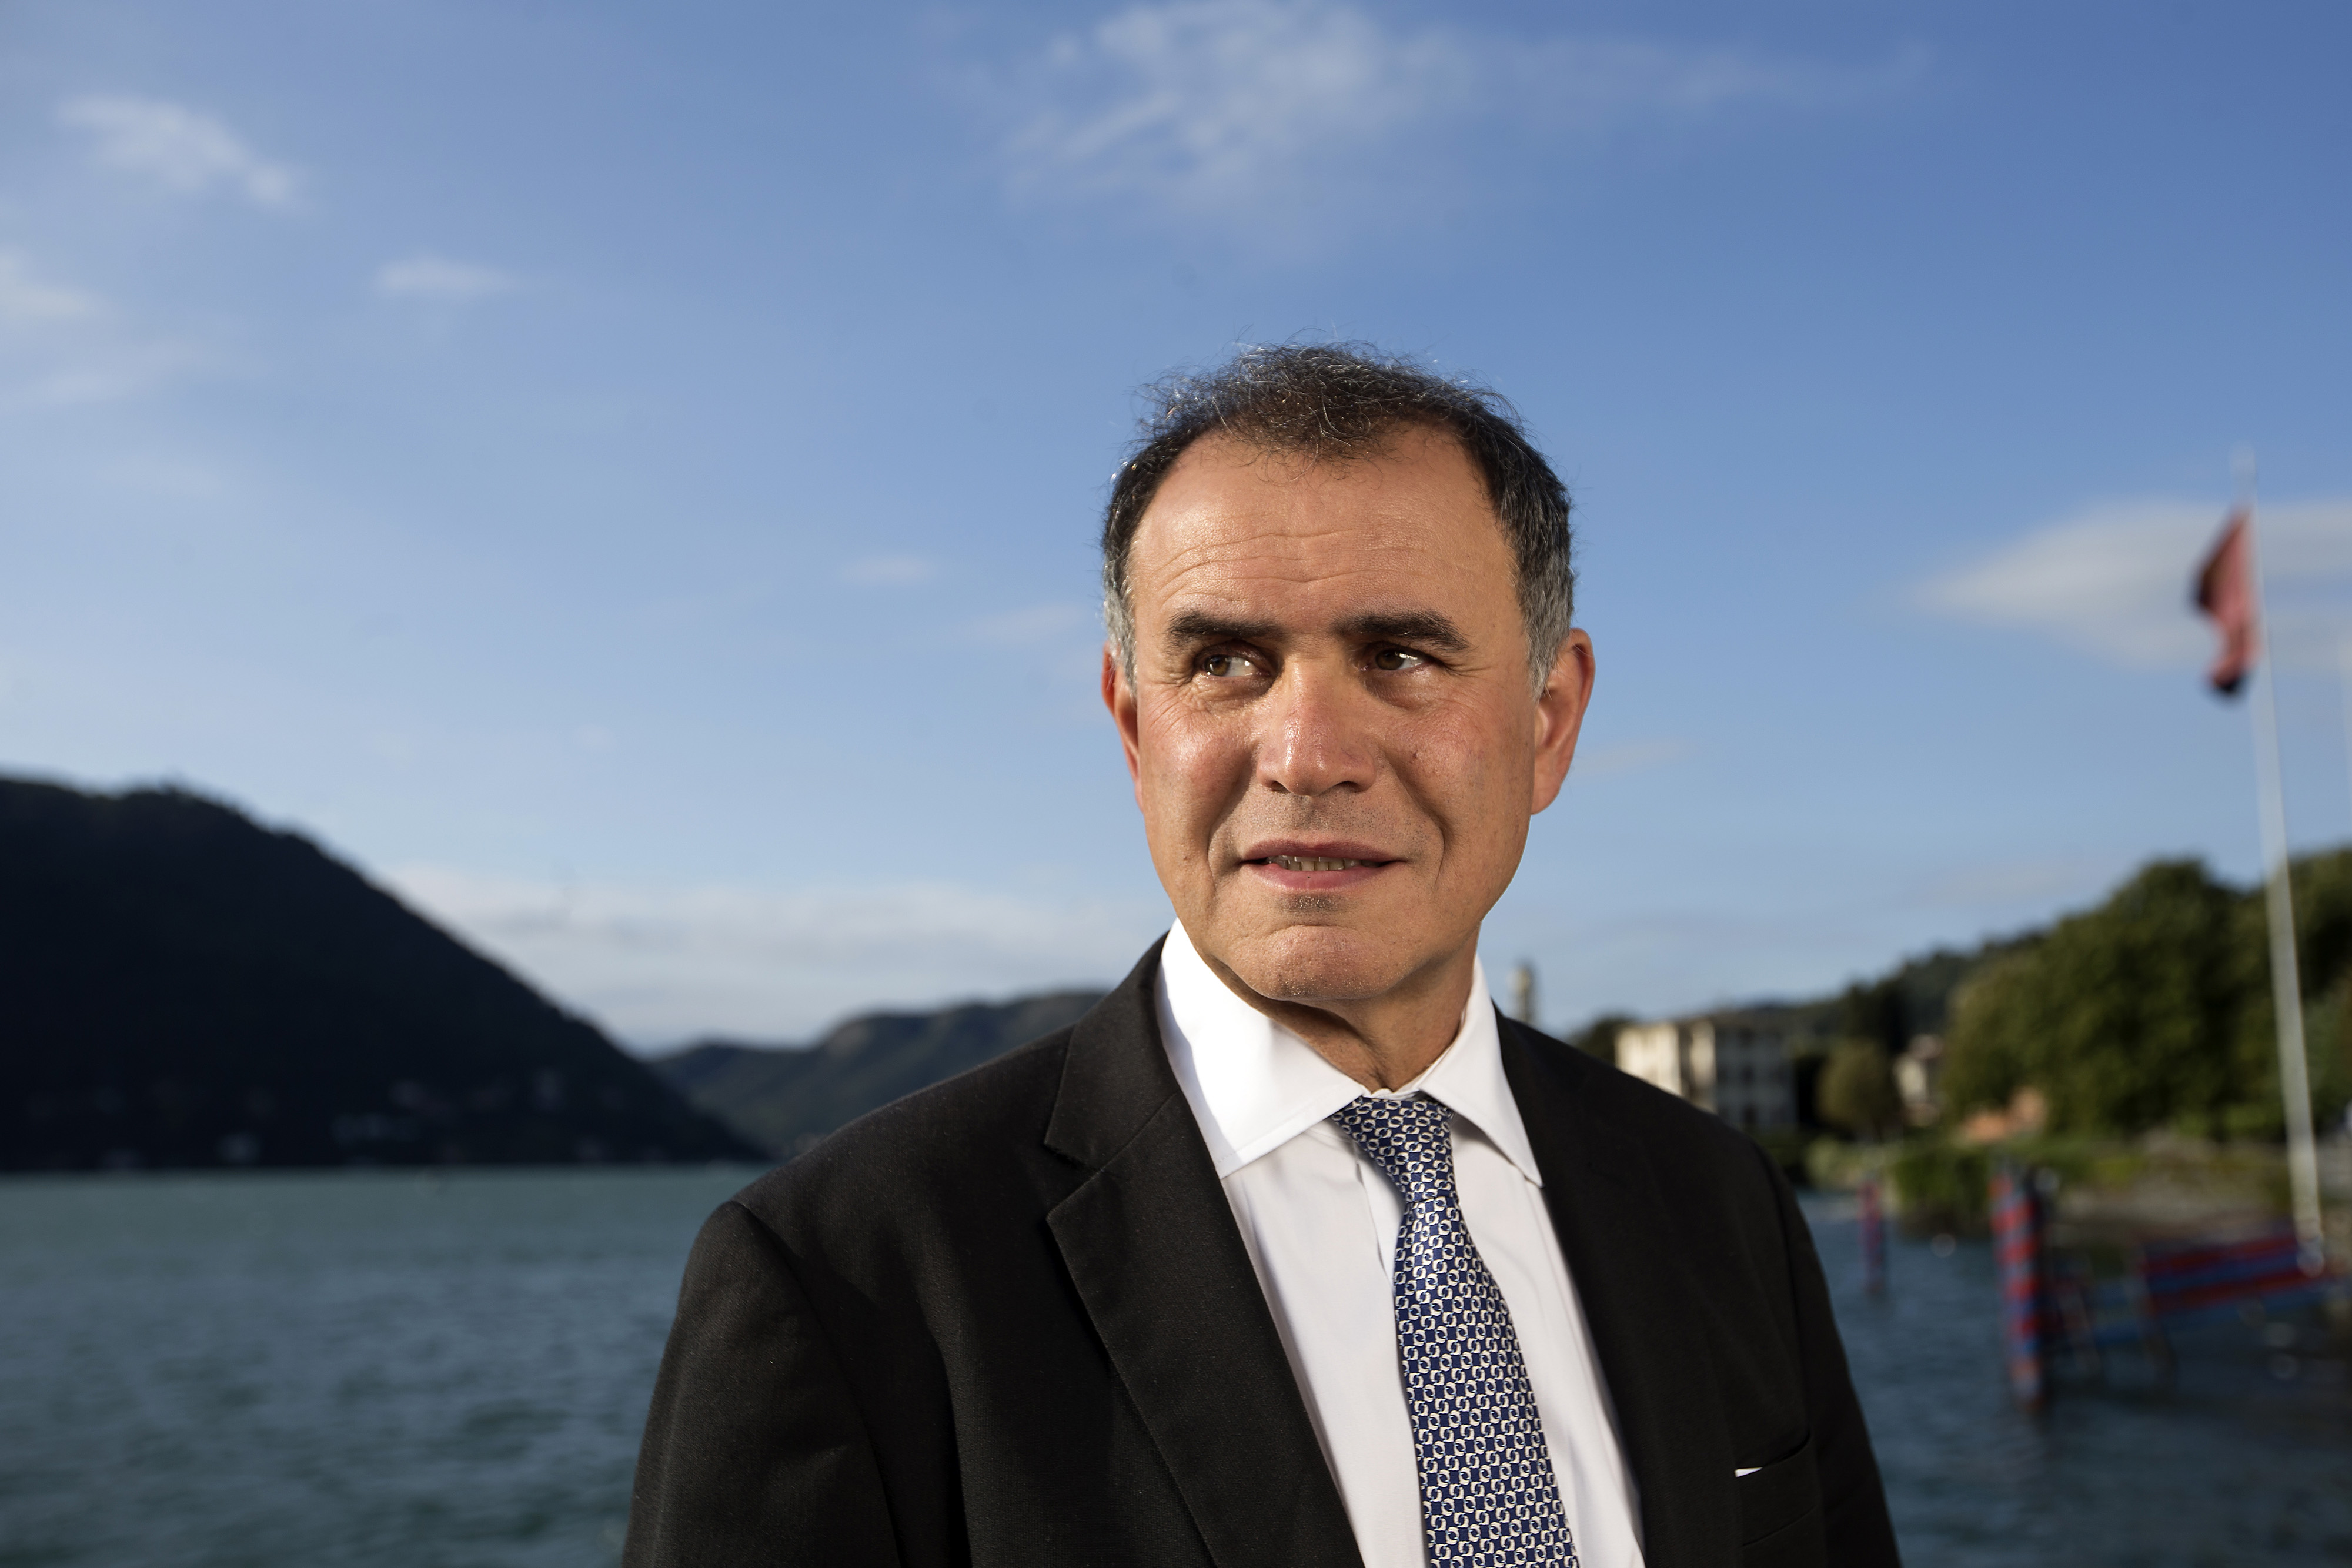 Nouriel Roubini, chairman of Roubini Global Economics, at the Ambrosetti Forum in Cernobbio, Italy, on Sept. 4, 2015.